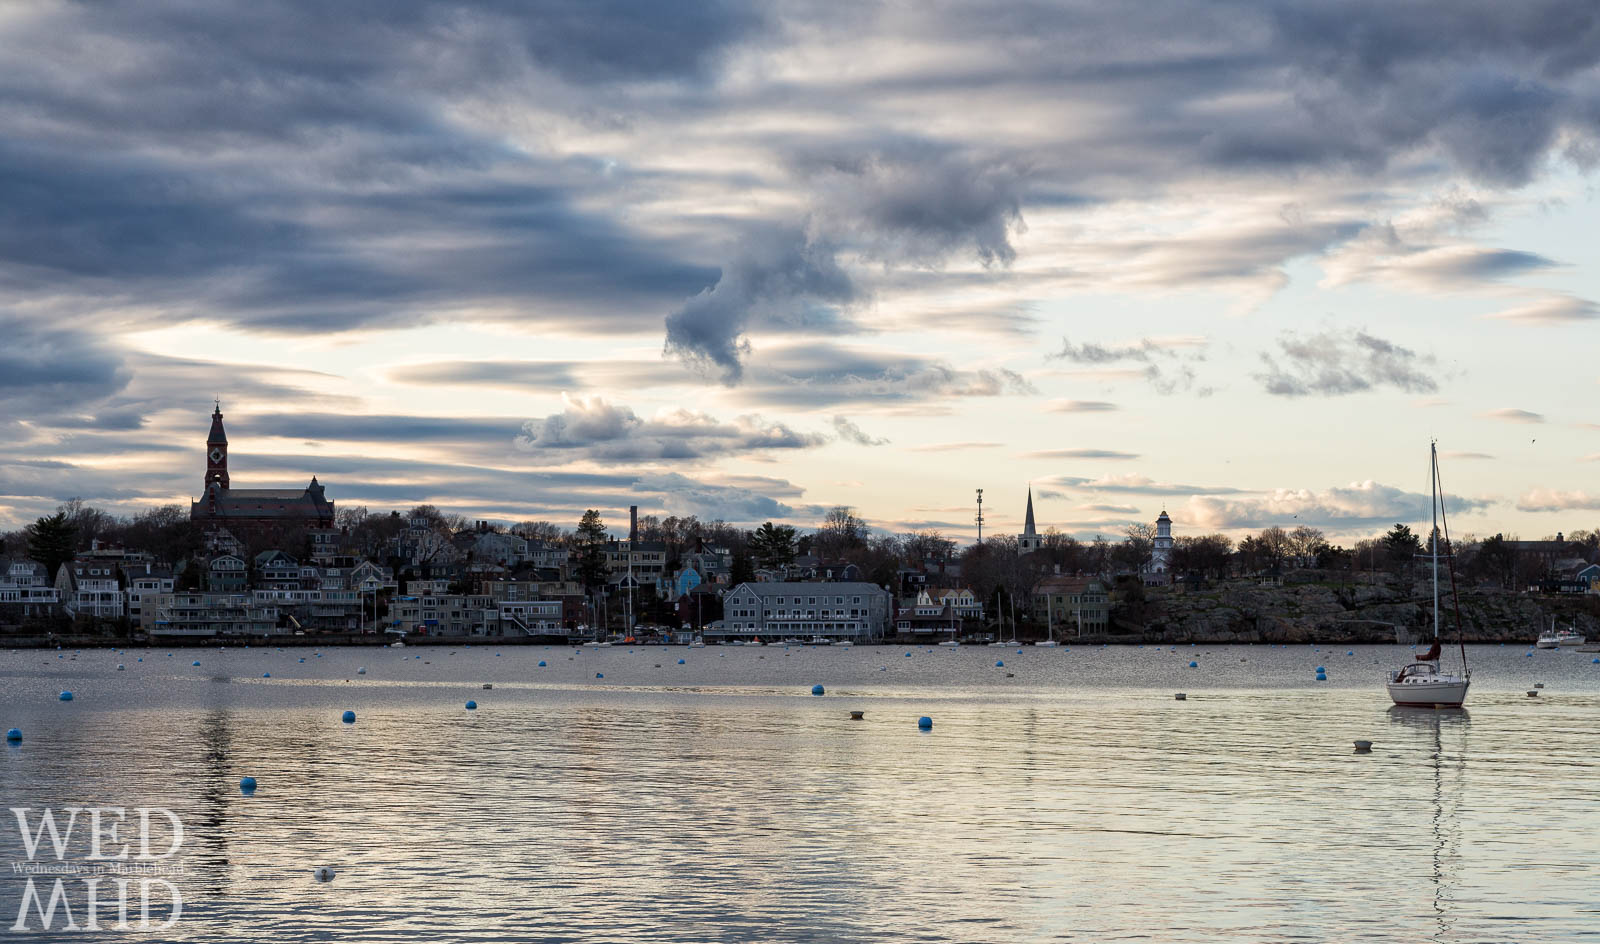 A lone sailboat is moored in the middle of Marblehead Harbor on a late April evening. This may be the first one into the harbor but more will soon follow.